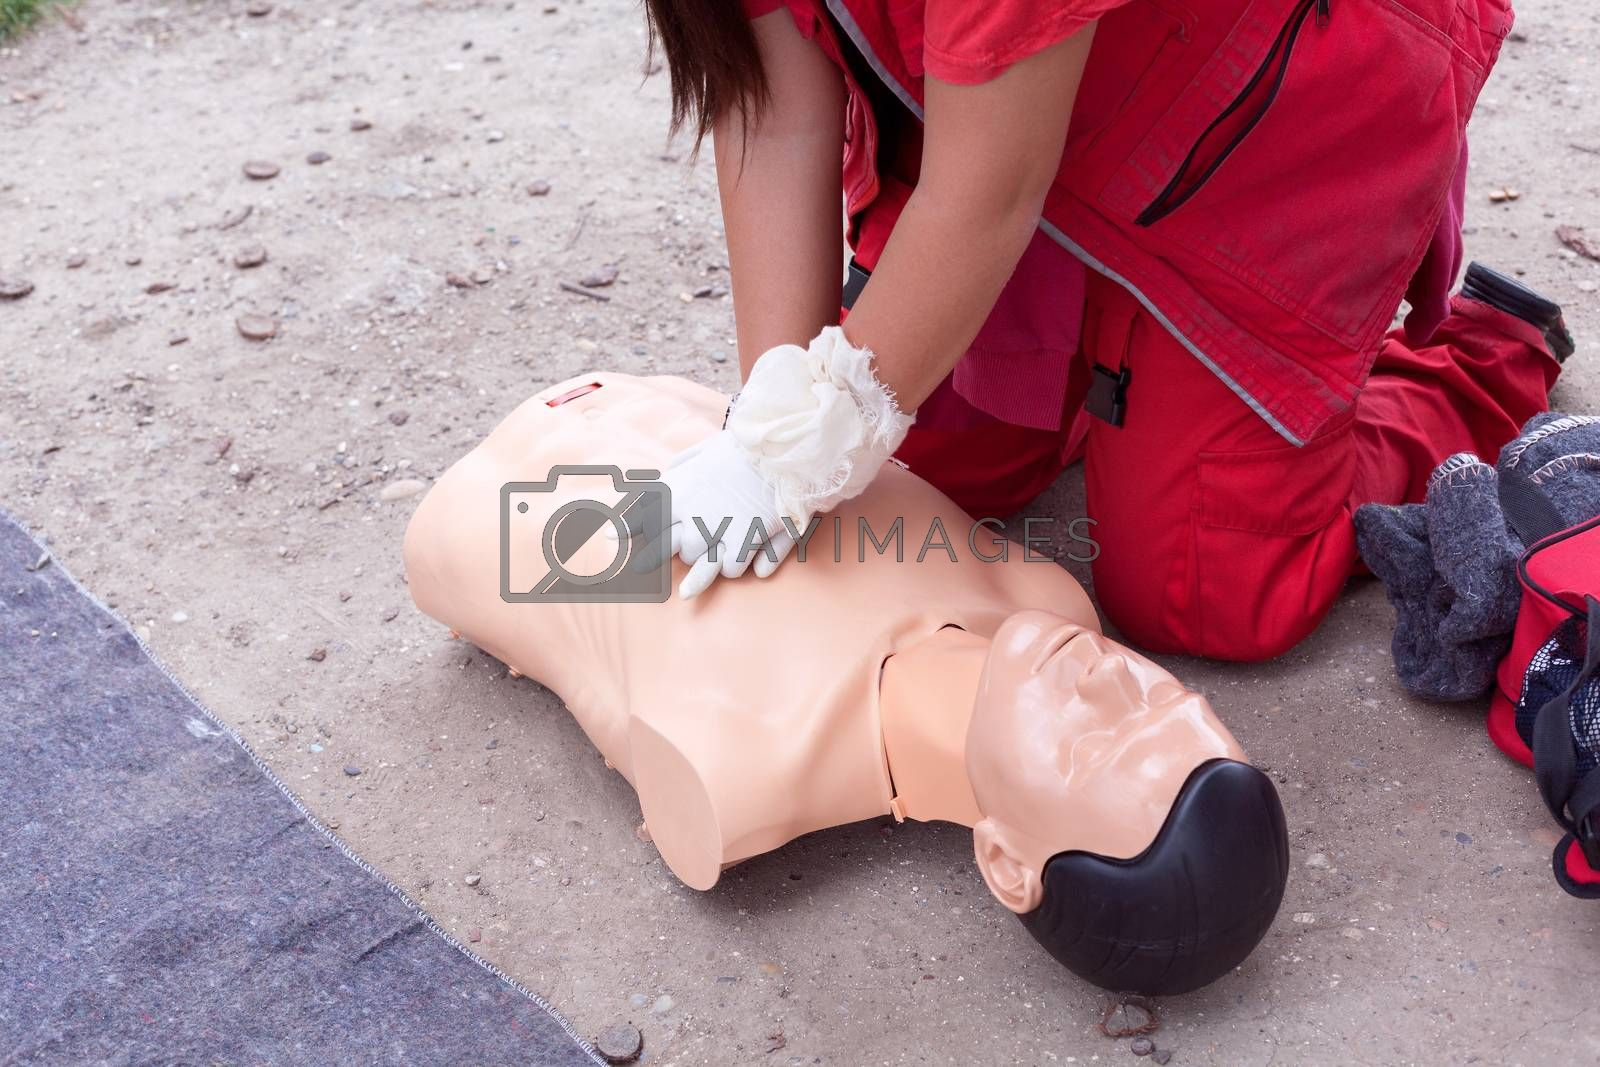 Female instructor showing cardiopulmonary resuscitation - CPR on training doll. First aid training.